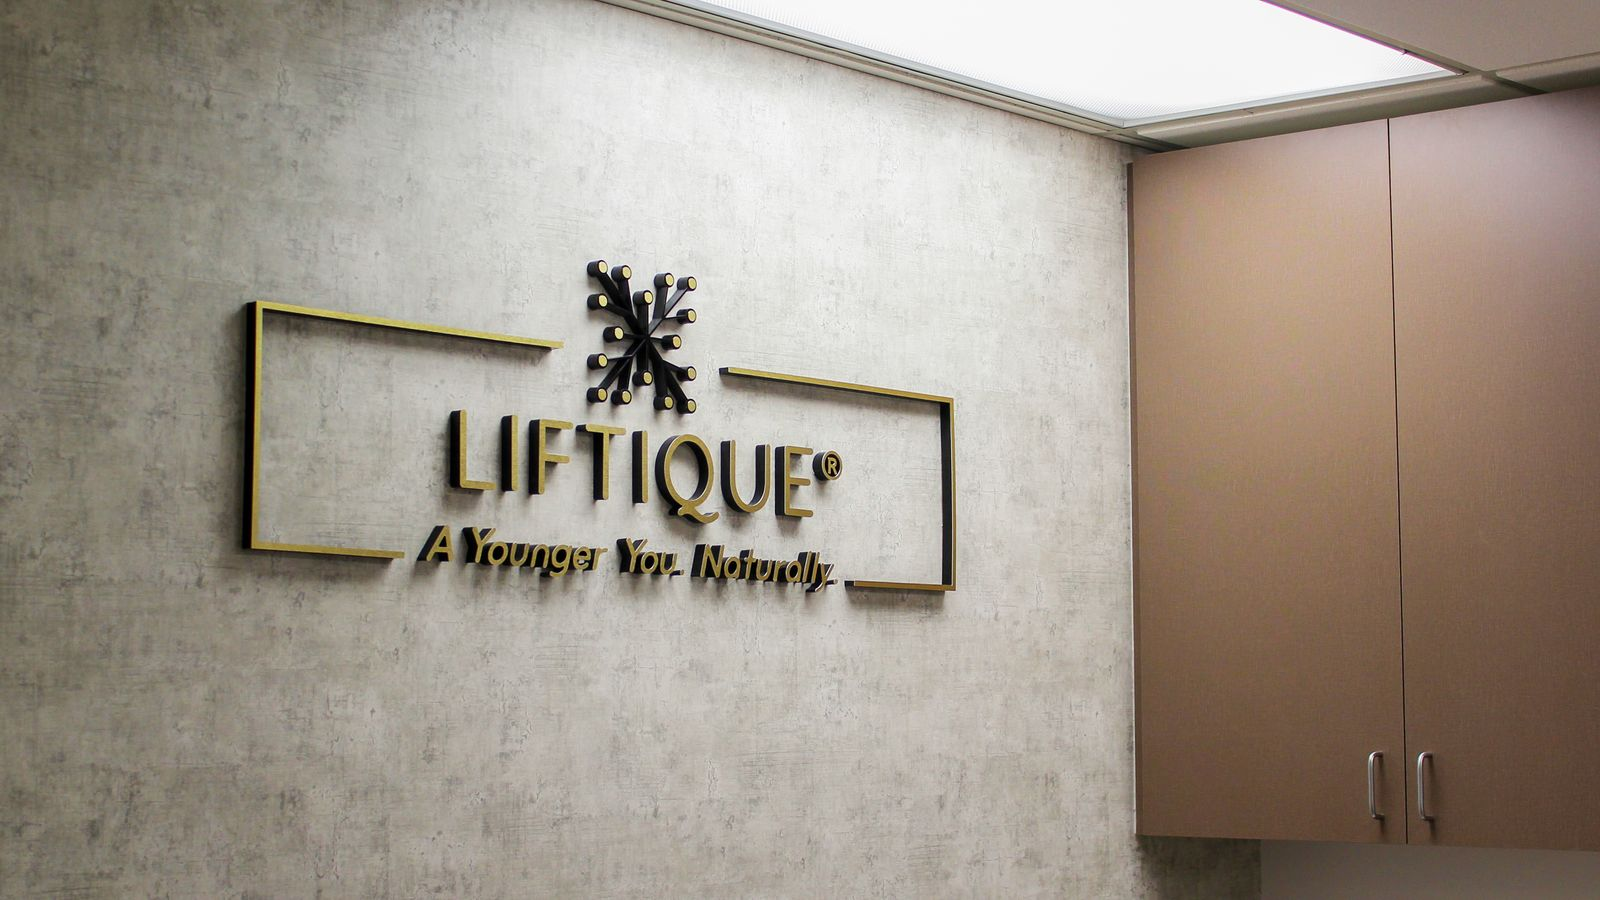 Liftique Clinic office lobby logo sign and slogan made of aluminum and acrylic for interior branding